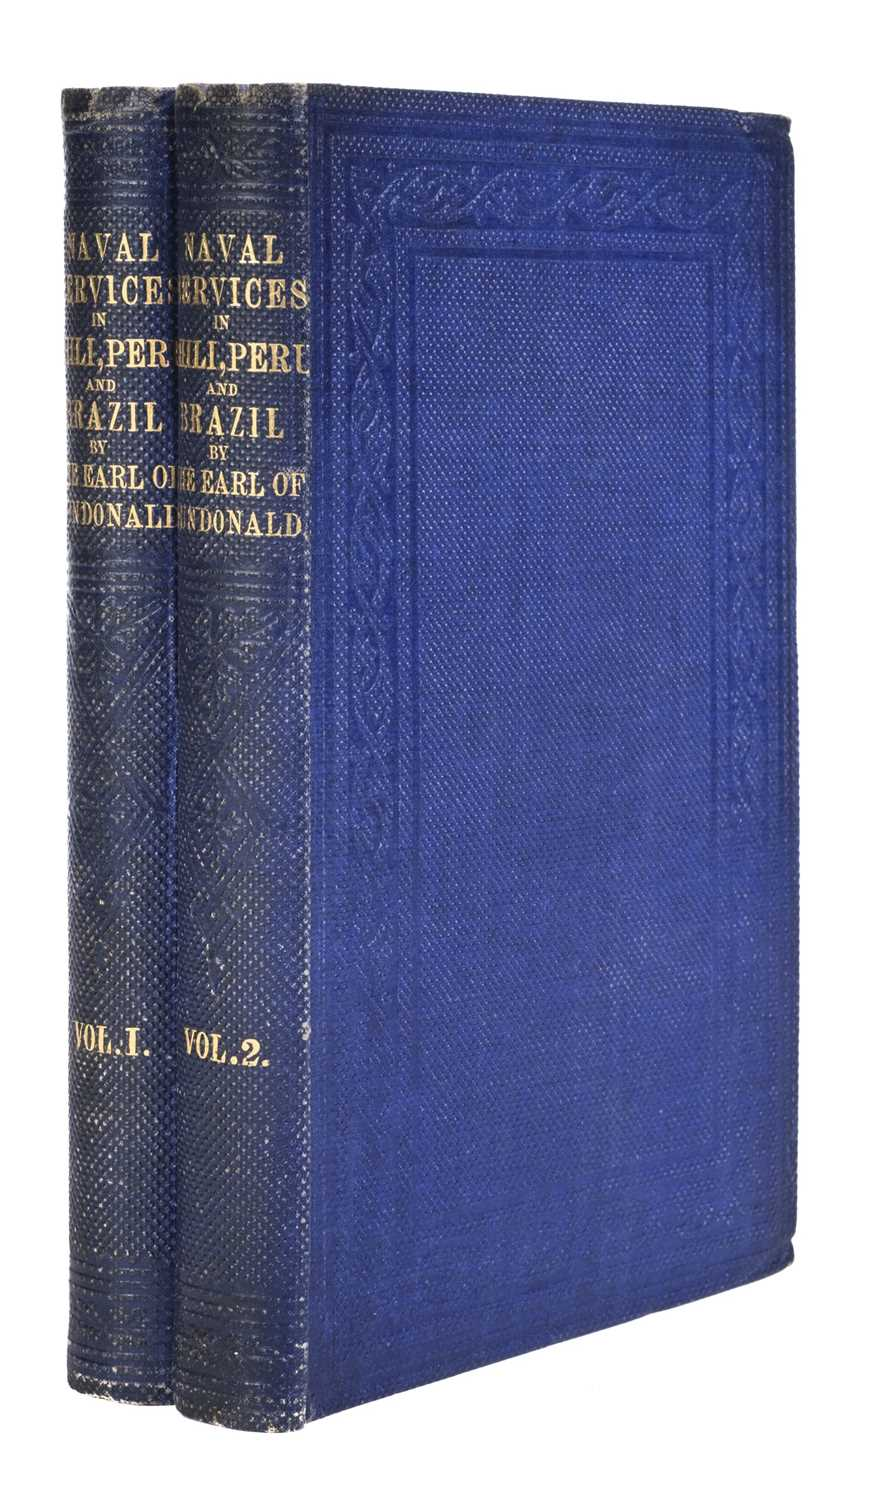 Lot 10 - Dundonald (Earl of). Narrative of Services in the Liberation of Chili, Peru, and Brazil, 1859